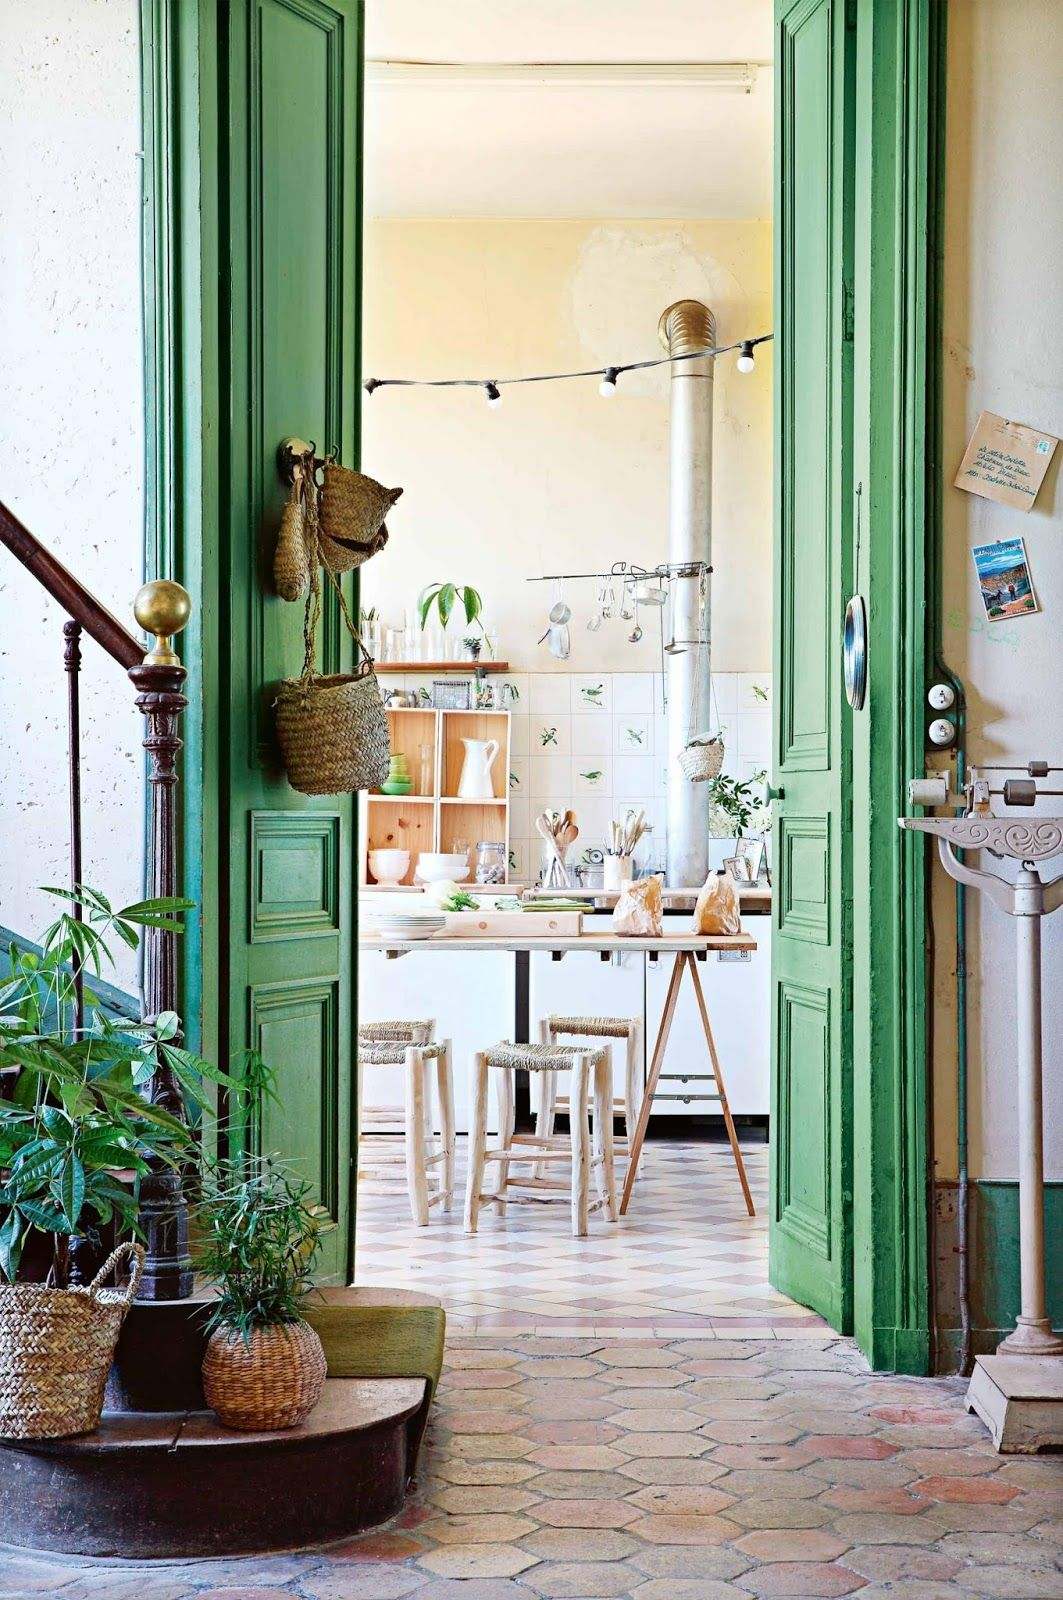 A renovated chateau in France with a laid back boho style. The green doors and & A renovated chateau in France with a laid back boho style. The ... Pezcame.Com